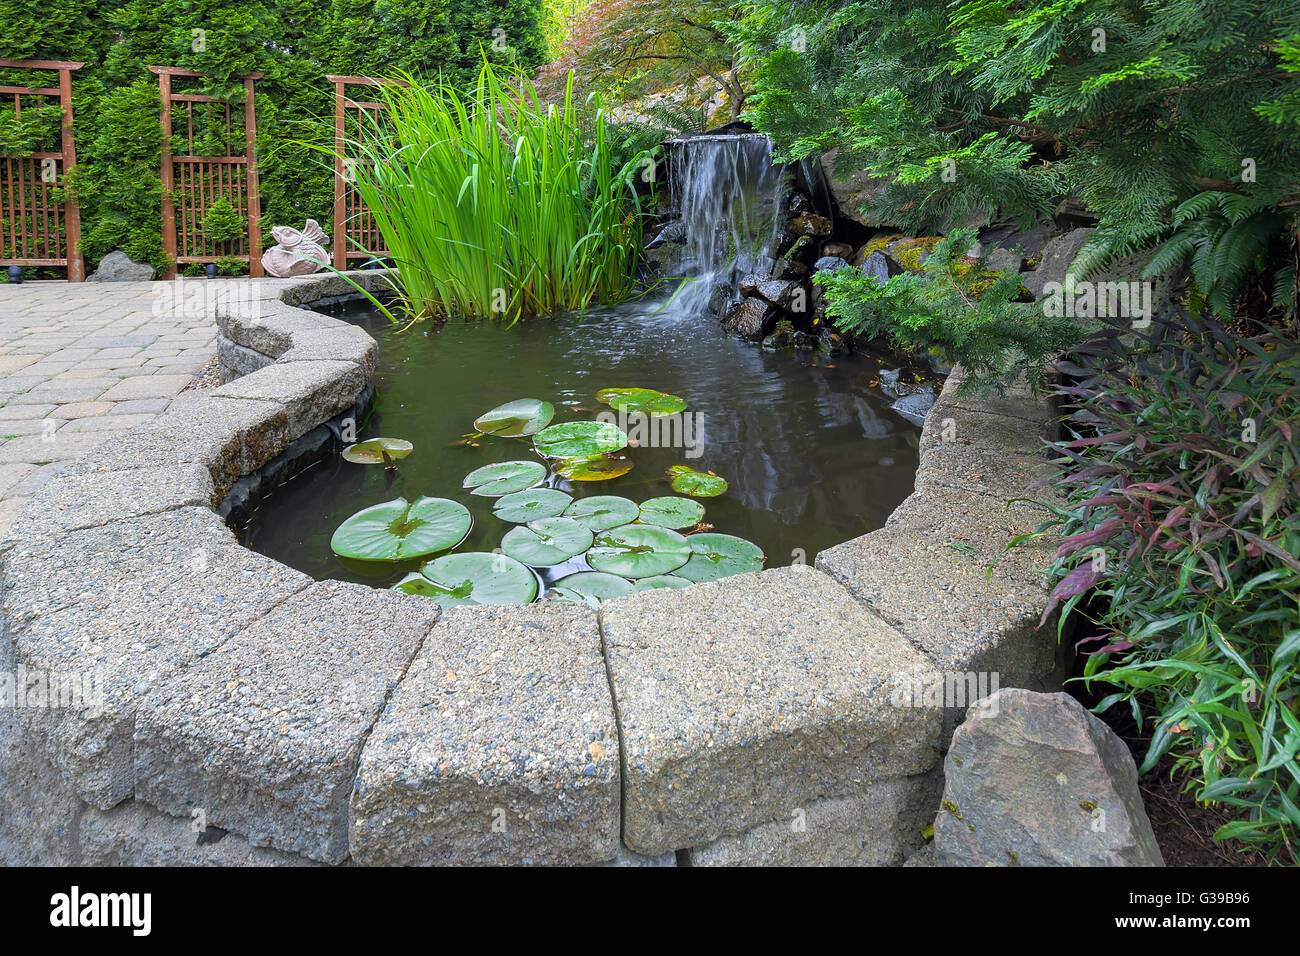 garden backyard pond with waterfall water plants brick paver patio